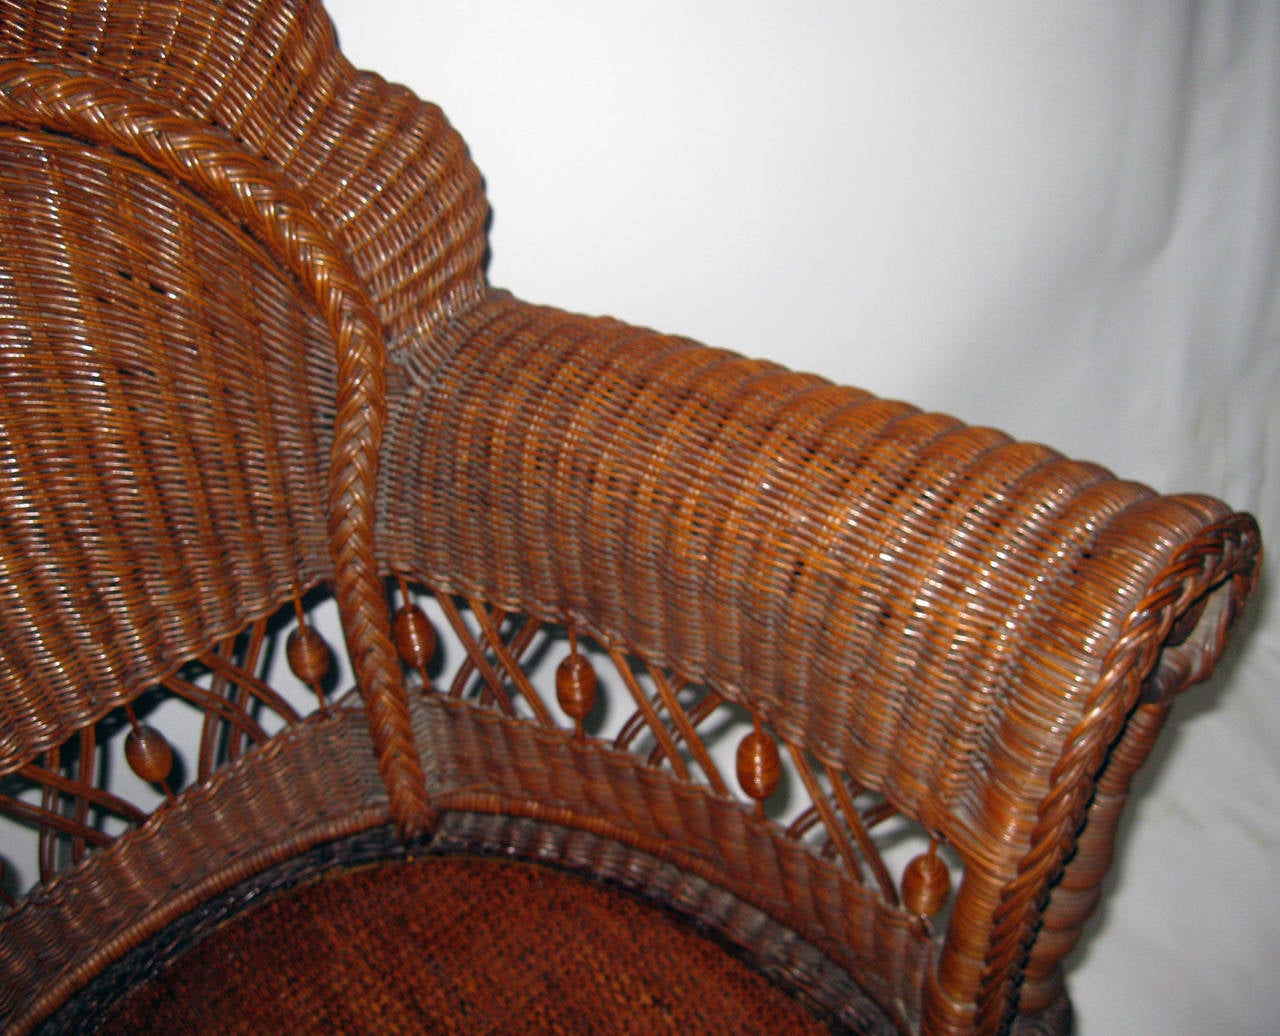 Woven 19th Century American Wicker Heywood Brothers Armchair